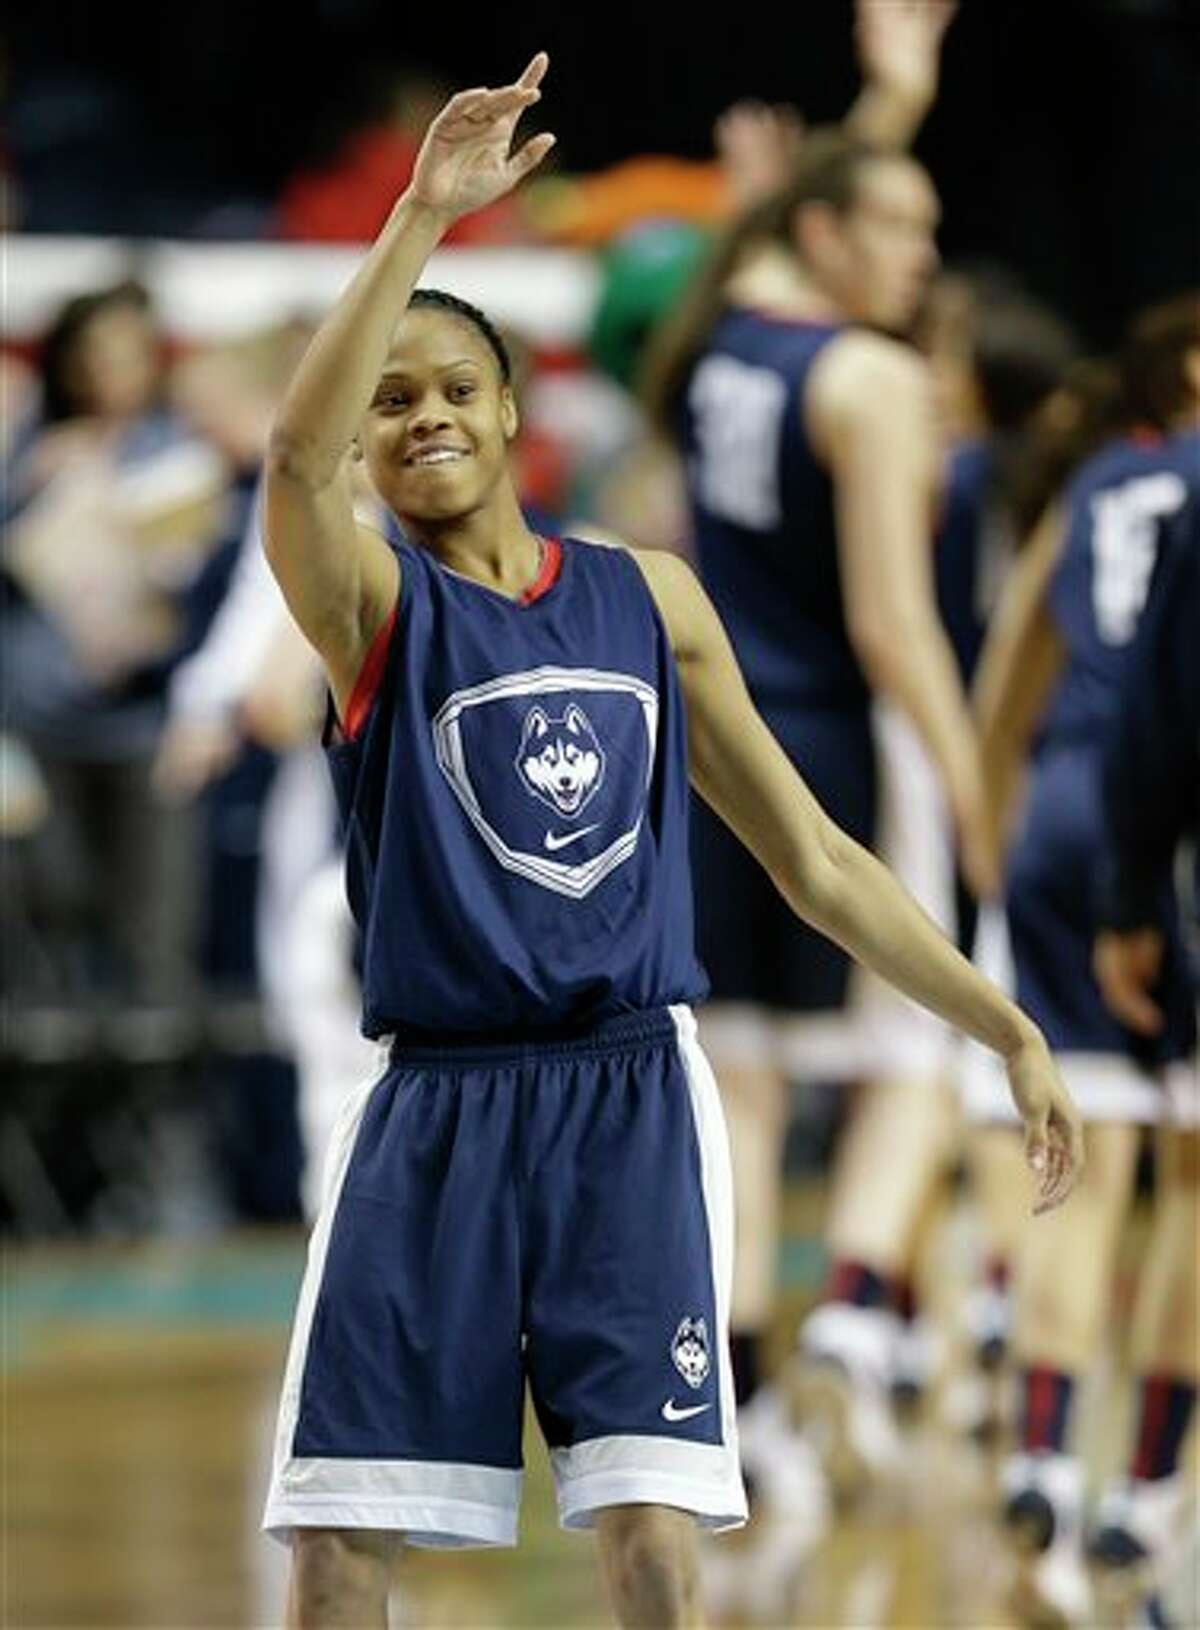 Connecticut guard Moriah Jefferson waves after practice before the women'sFinalFour of the NCAA college basketball tournament, Saturday, April 5, 2014, in Nashville, Tenn. Connecticut plays Stanford Sunday. (AP Photo/Mark Humphrey)